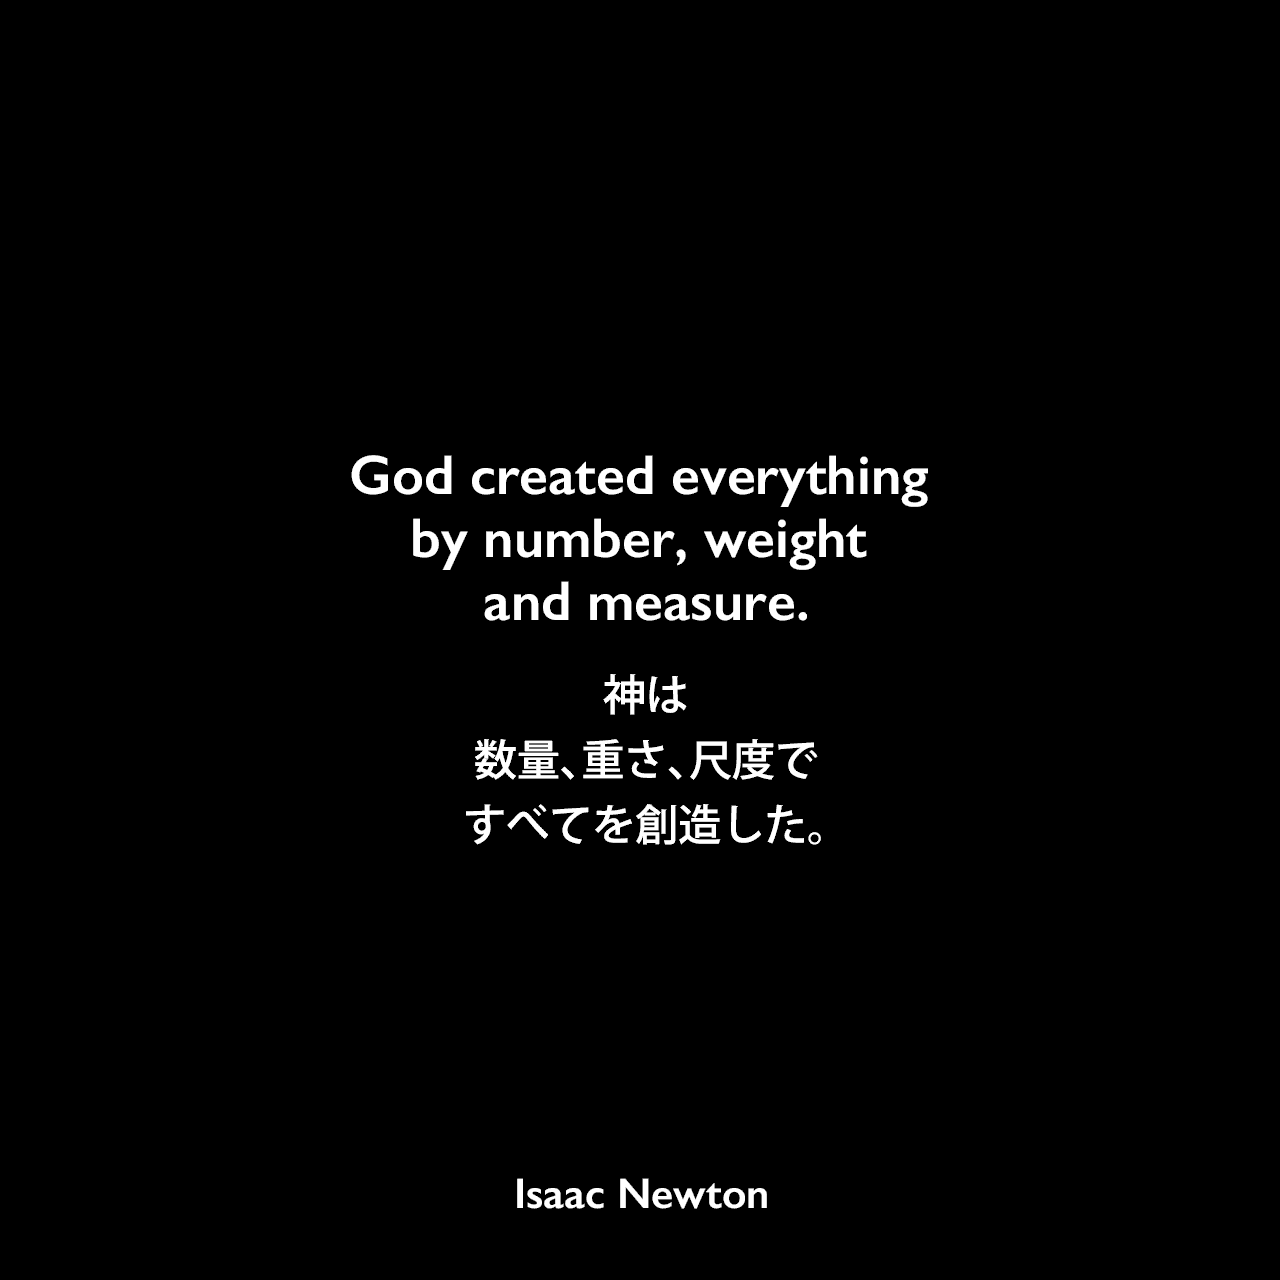 God created everything by number, weight and measure.神は数量、重さ、尺度ですべてを創造した。- ニュートンが学生のノートに書いたフレーズIsaac Newton